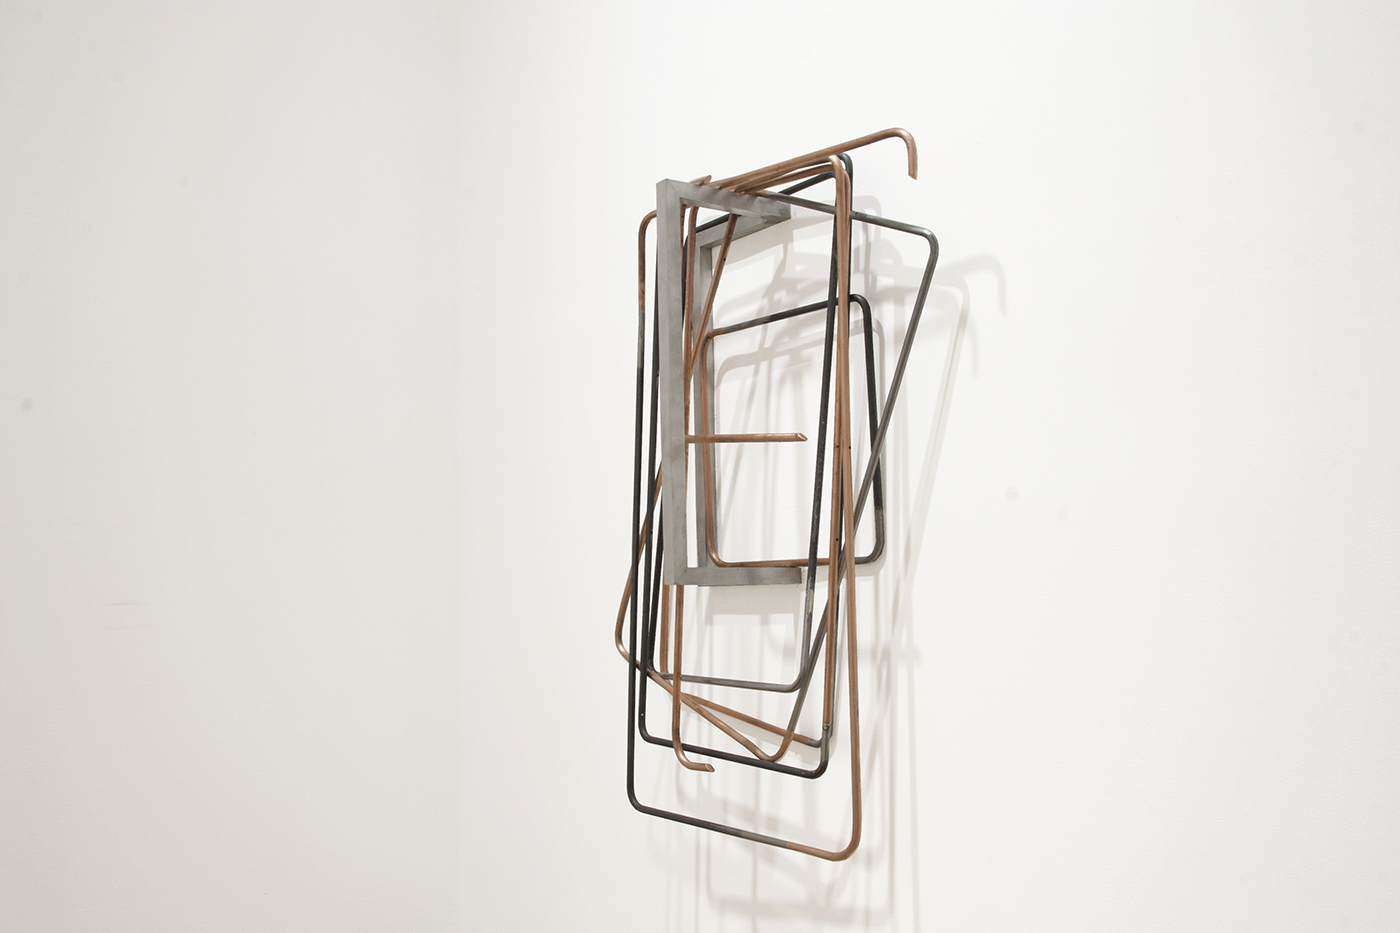 untitled (folding chairs), 2015; copper, steel, aluminium